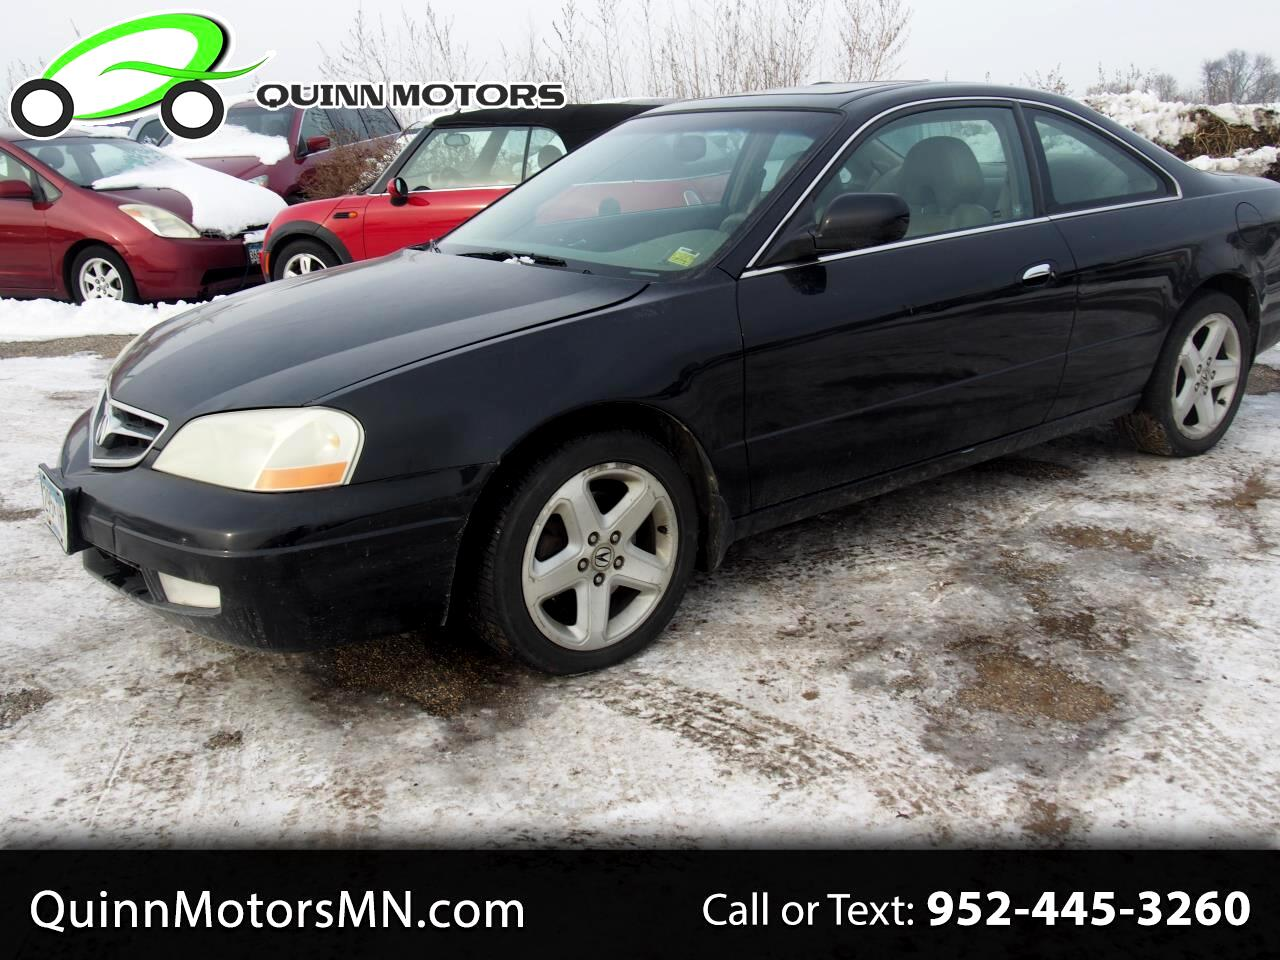 2001 Acura CL 2dr Cpe 3.2L Type S w/Navigation